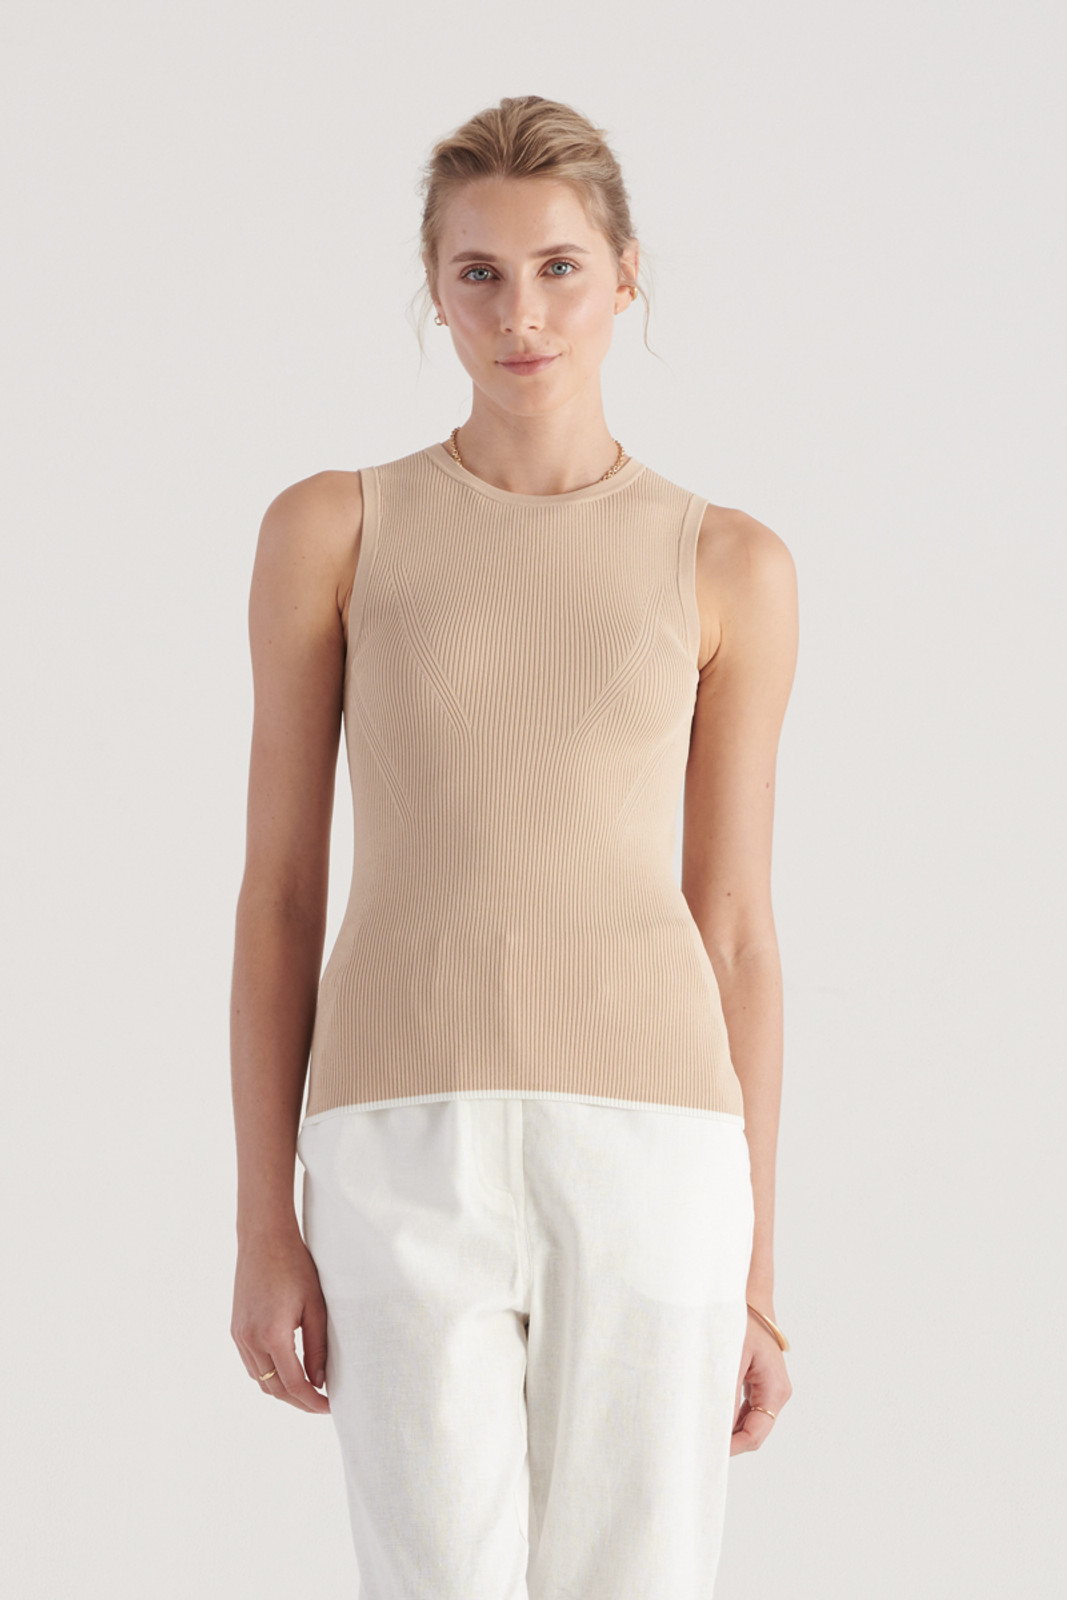 Elka Collective WomensTone Knit Top Sand  0